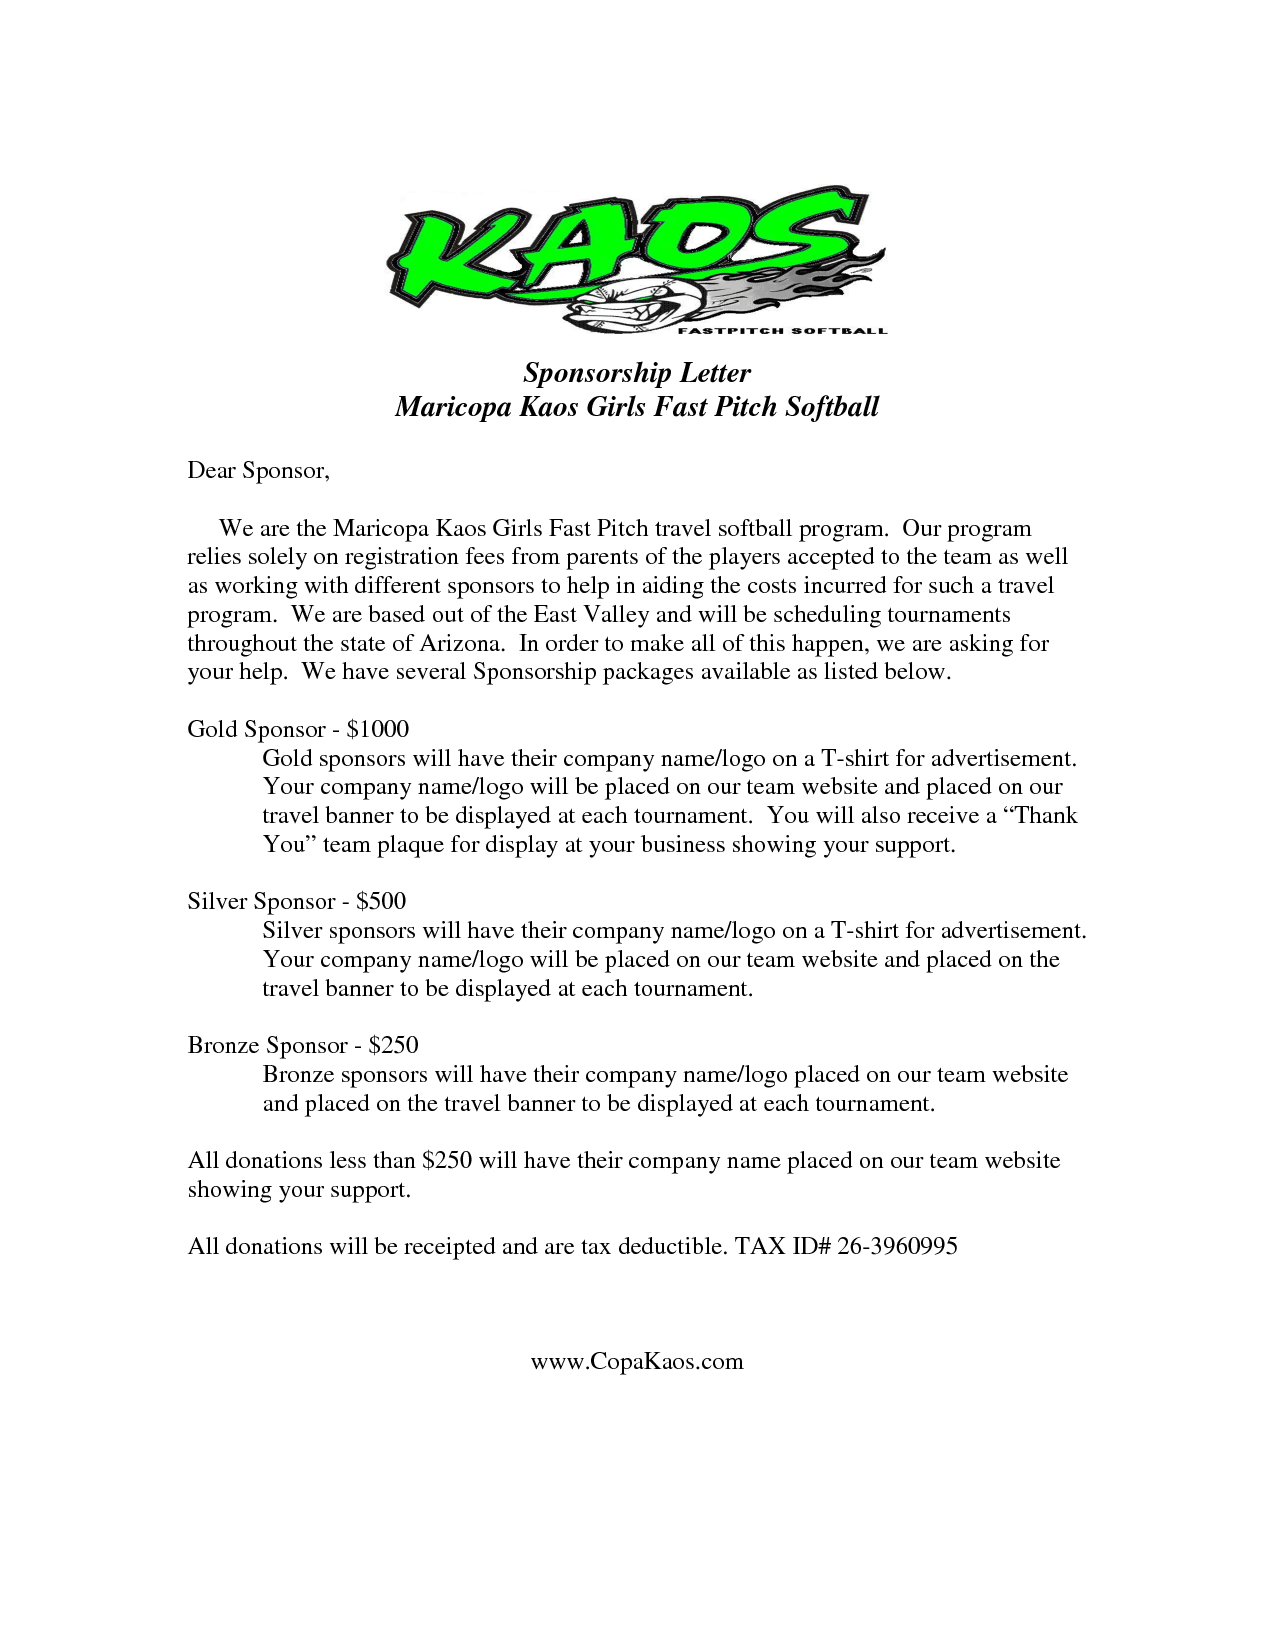 youth baseball sponsorship letter template example-Image result for sample sponsor request letter donation 2-e